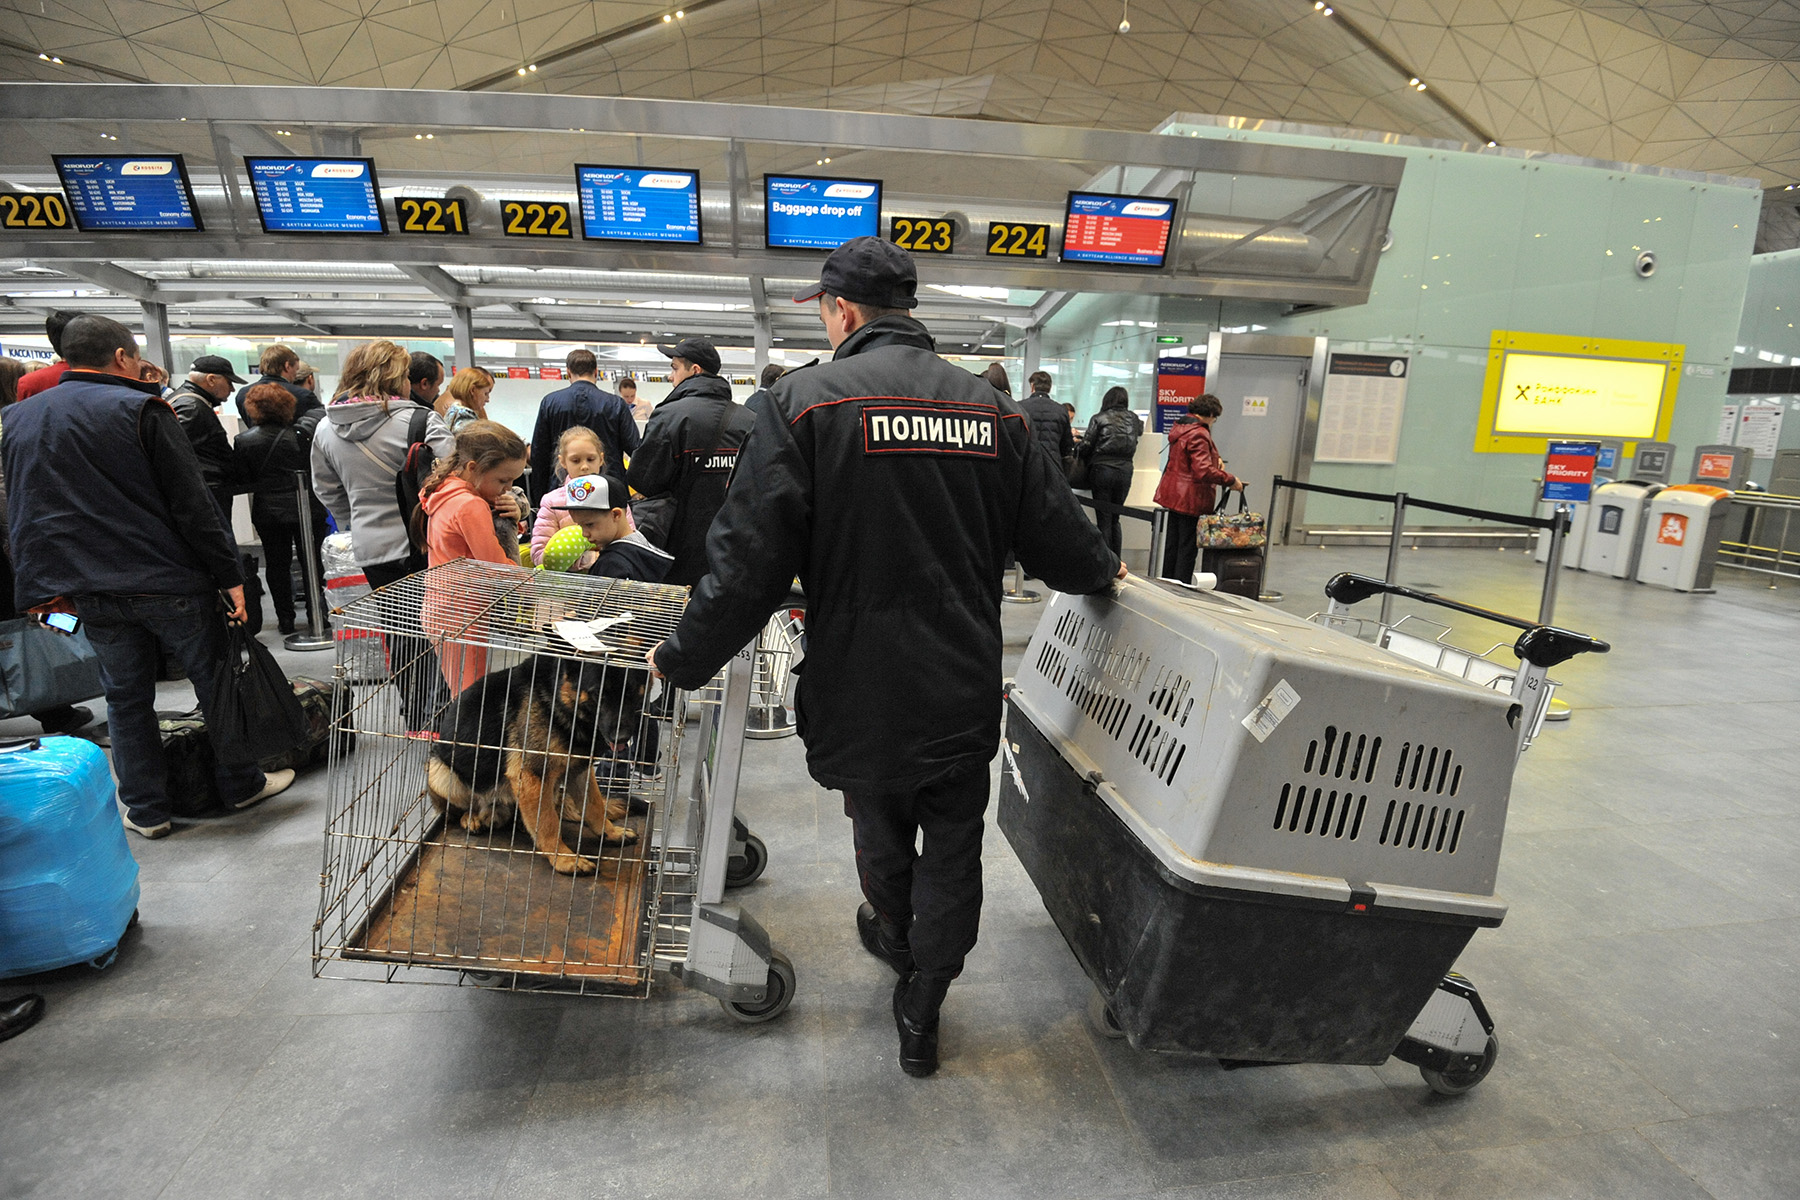 Dog crates at an airport check-in desk